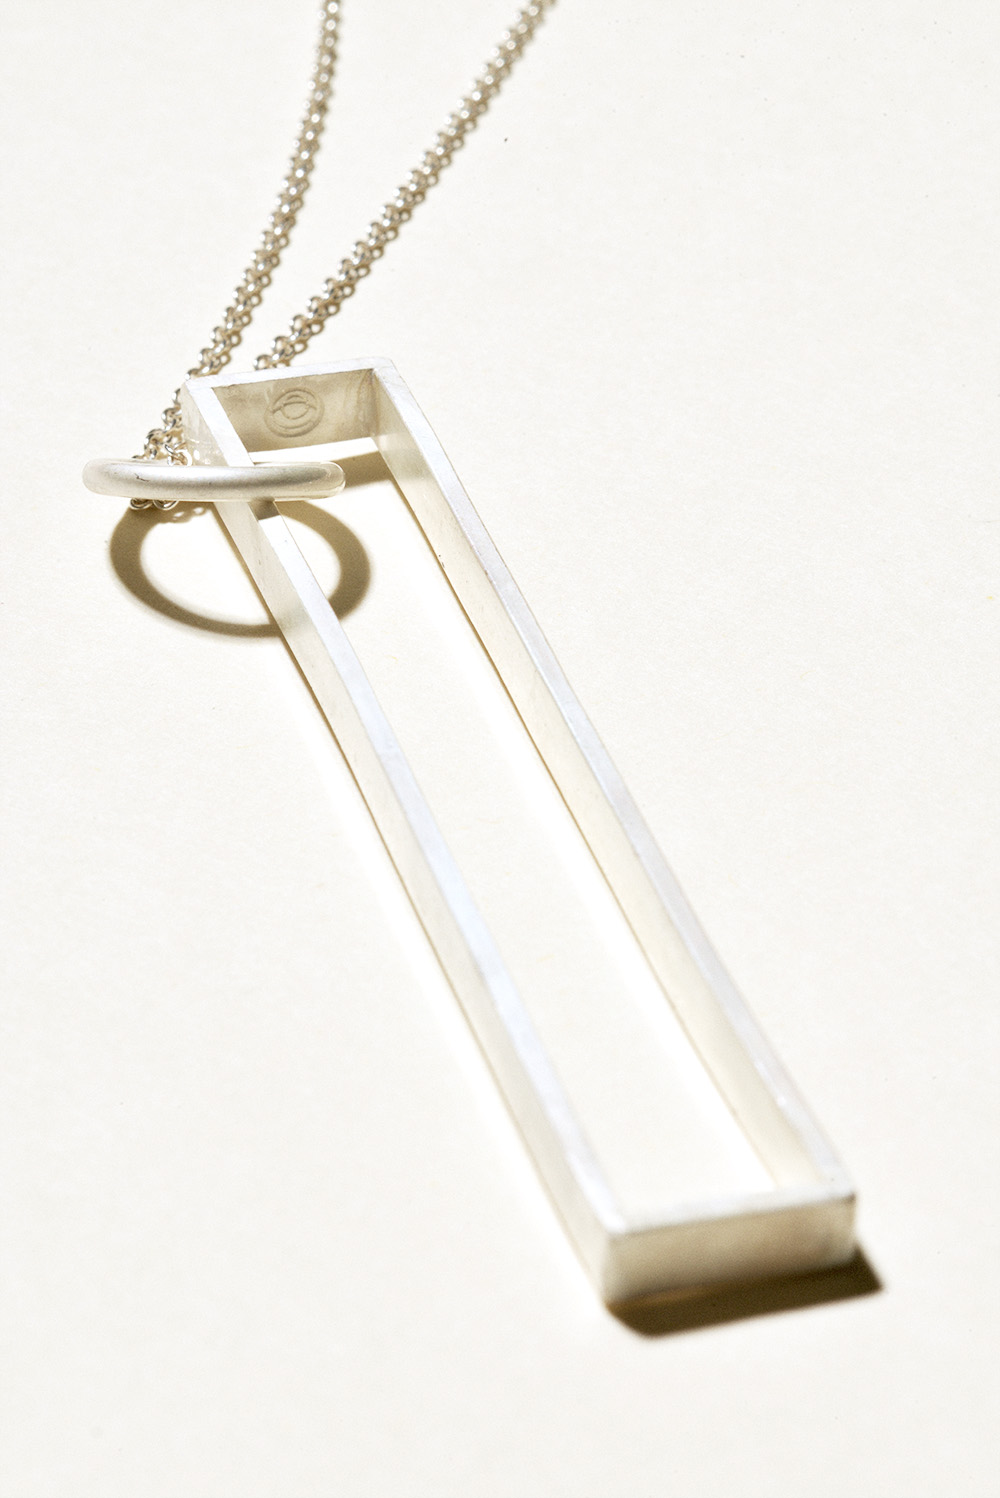 Long Bar Pendant - 3in x .5in on a 36in chainSterling Silver, Raw FinishHand Smithed $200